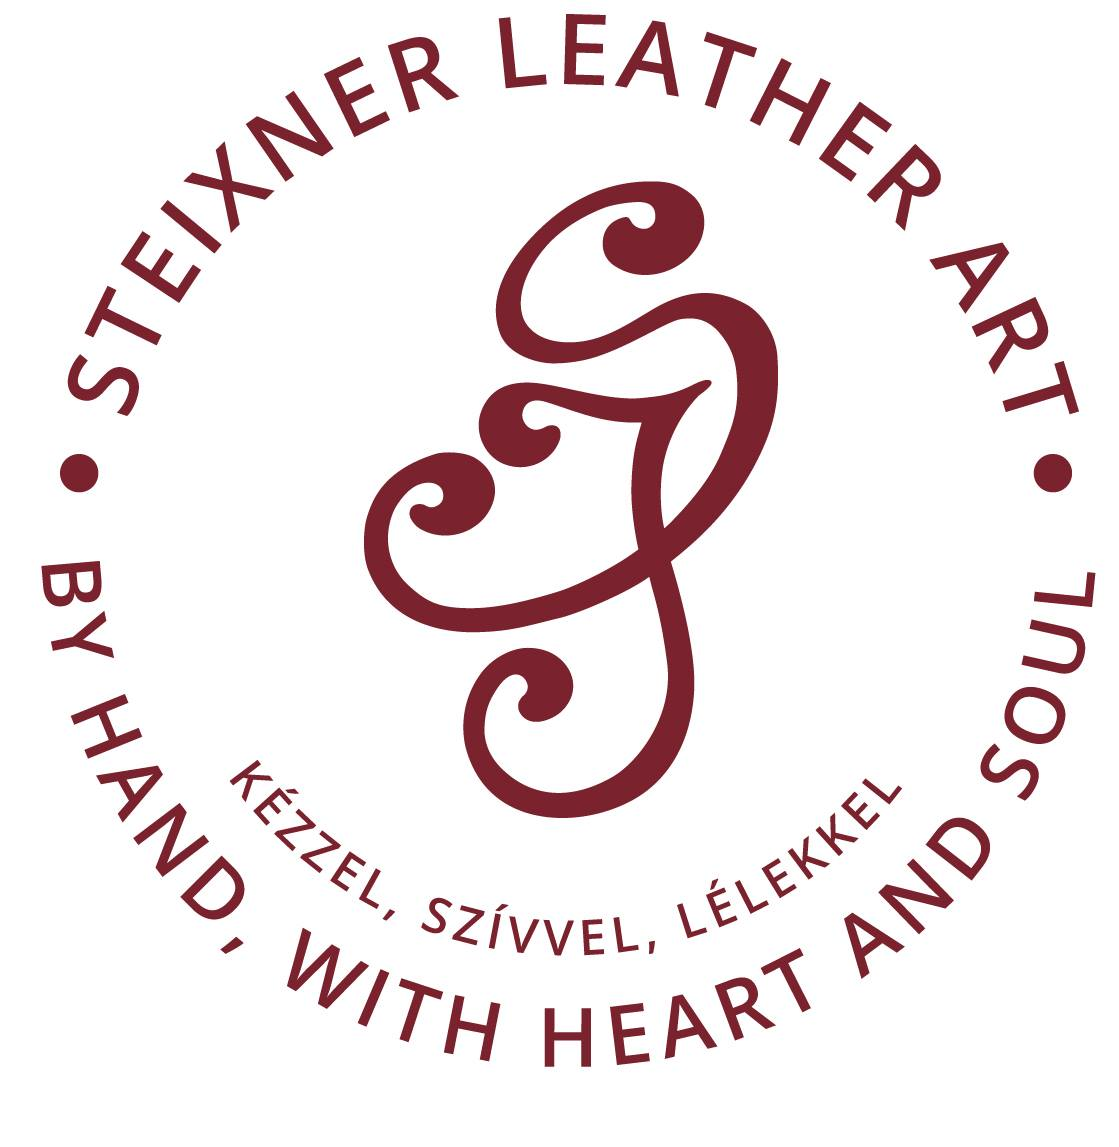 Steixler Leather Art logója